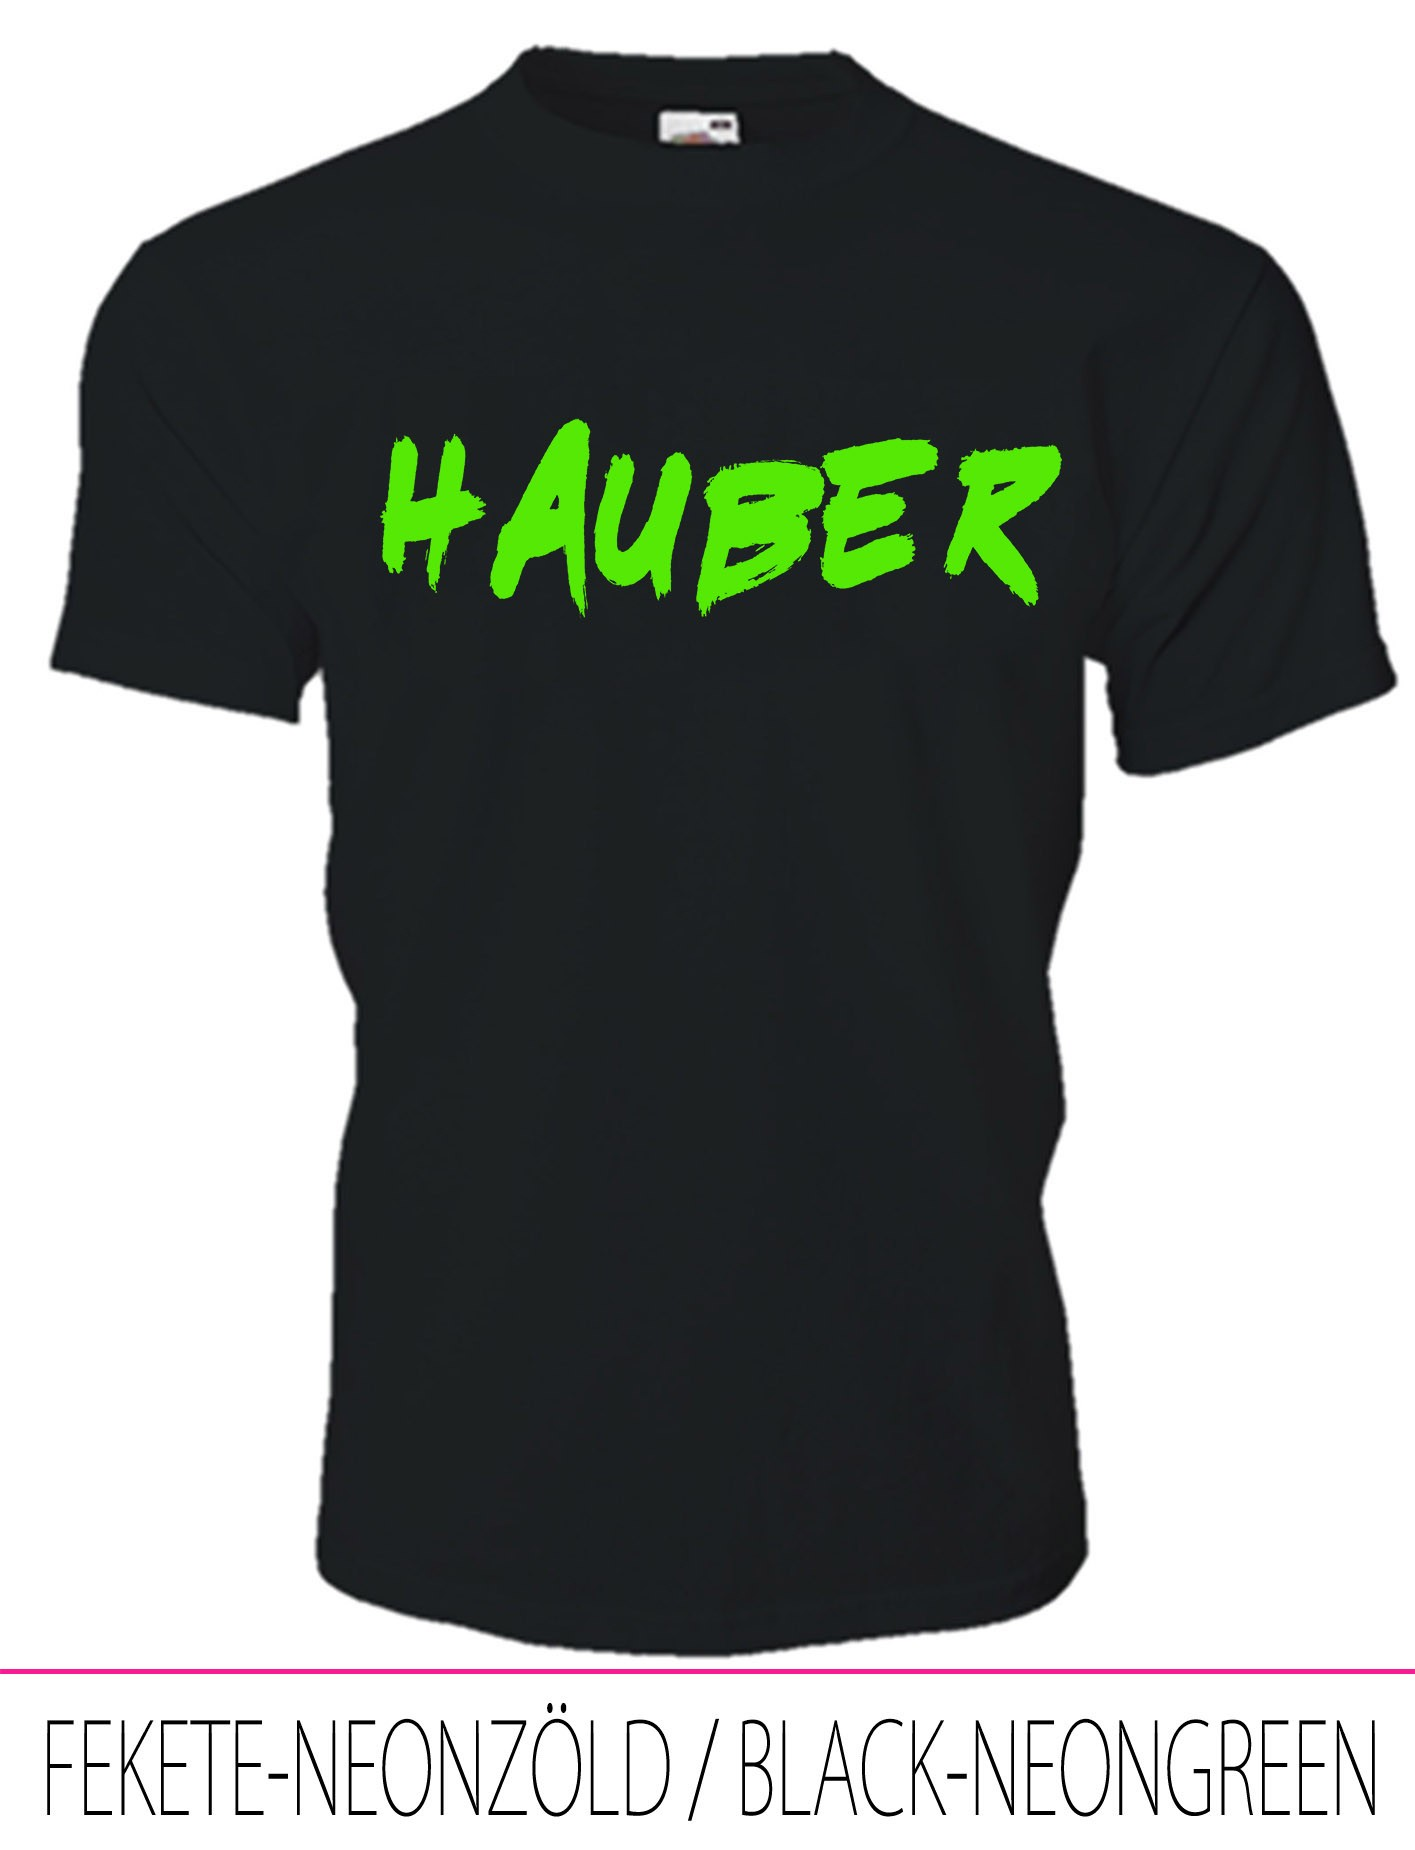 KIDS CREW NECK T-SHIRT HAUBER BLACK-NEONGREEN